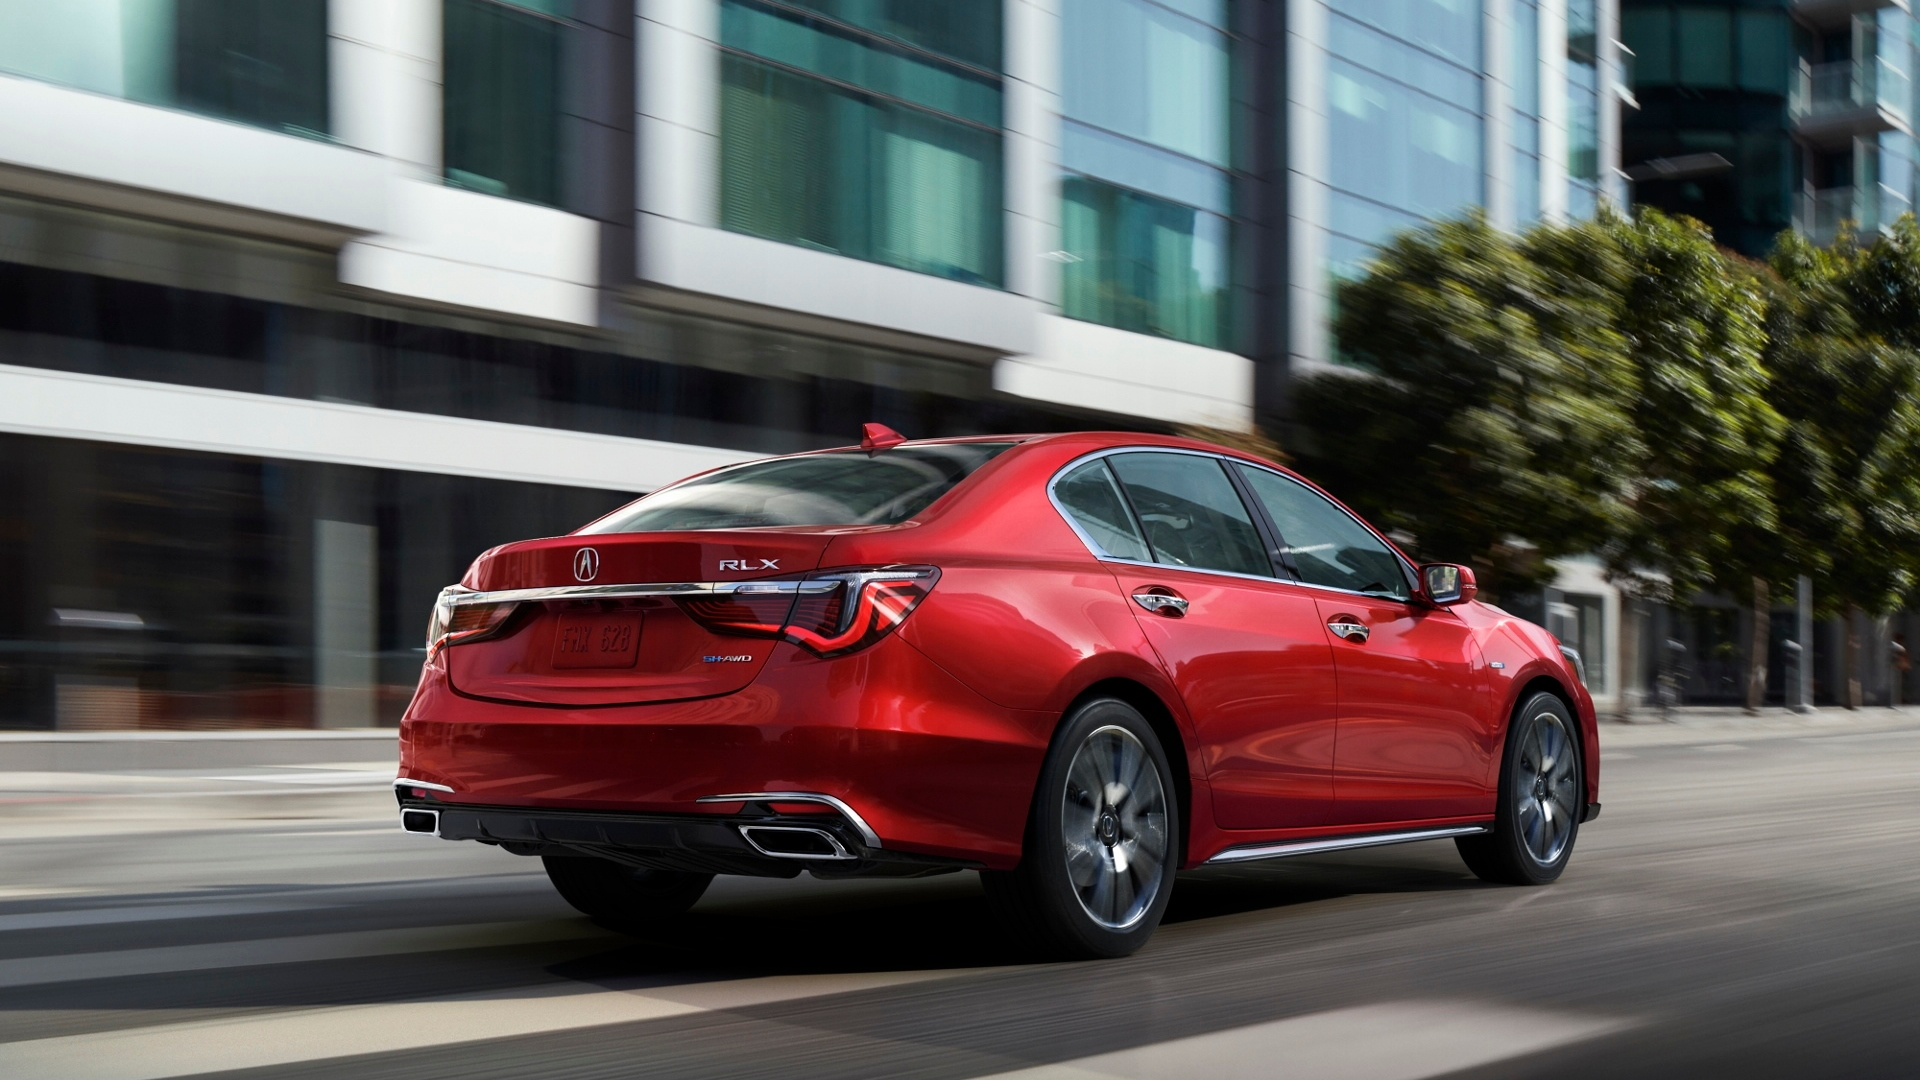 2018 Acura Rlx Gets New Look But Will It Be Enough To Compete